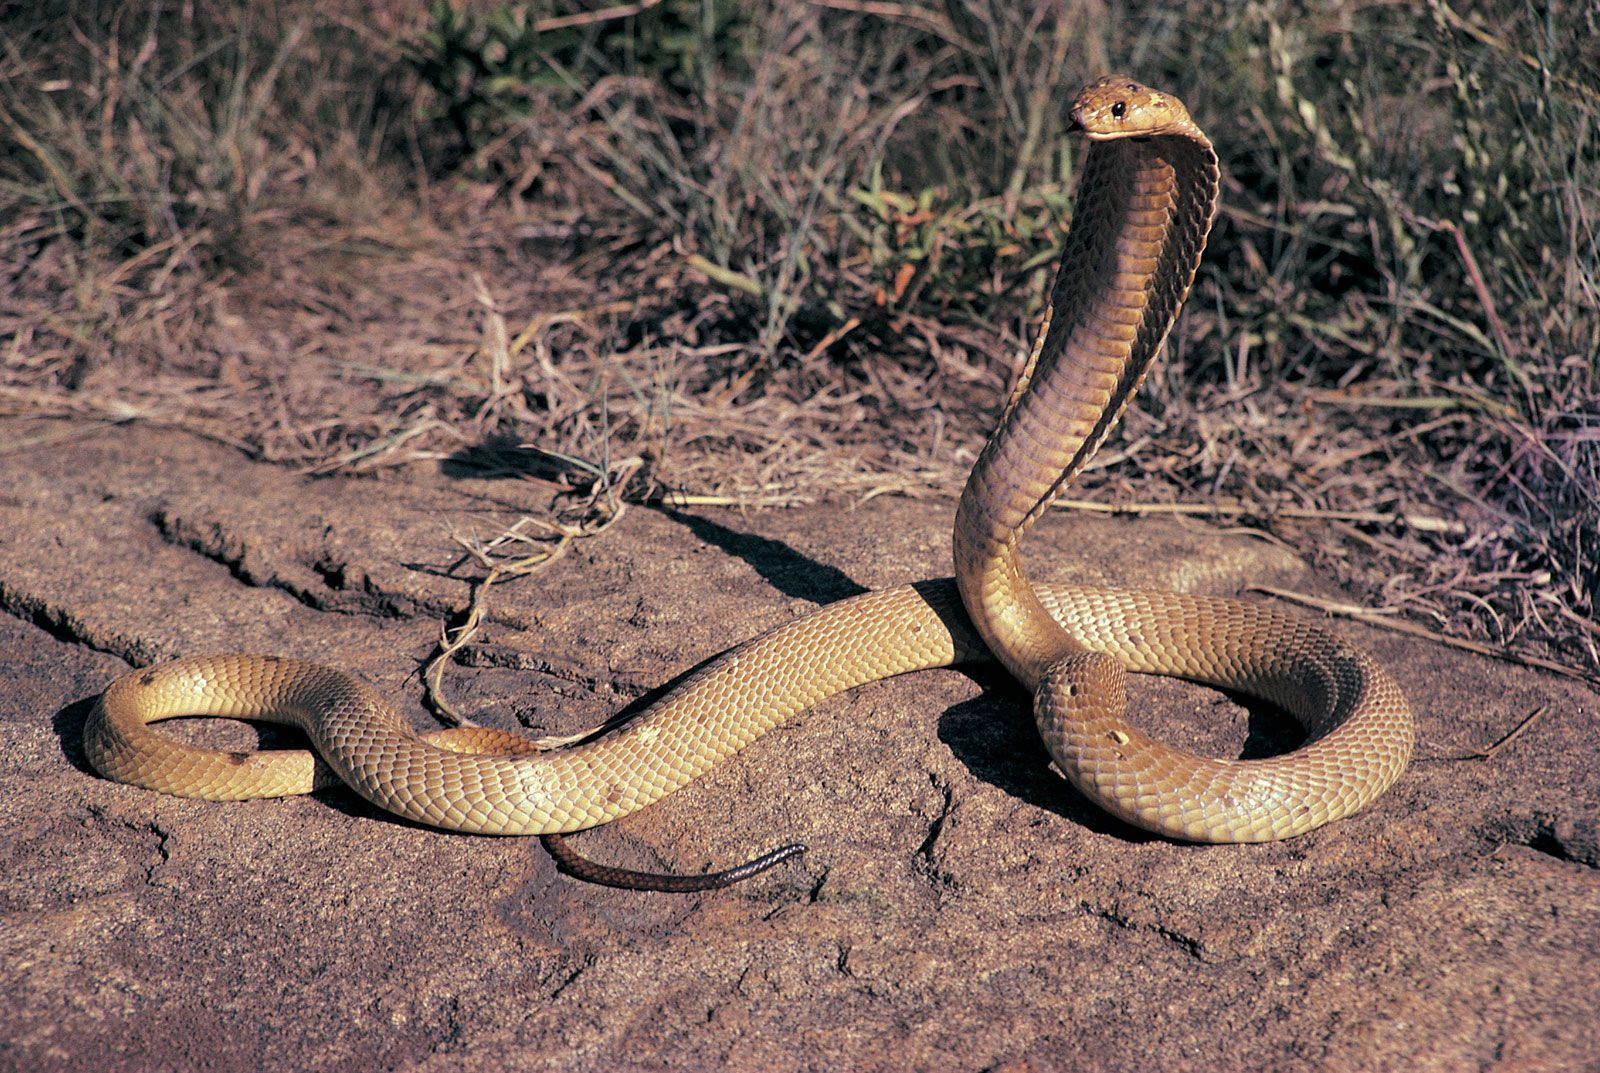 King Cobra. The largest venomous snake on earth.  This is a 9 footer.  They grow in excess of 20ft long.